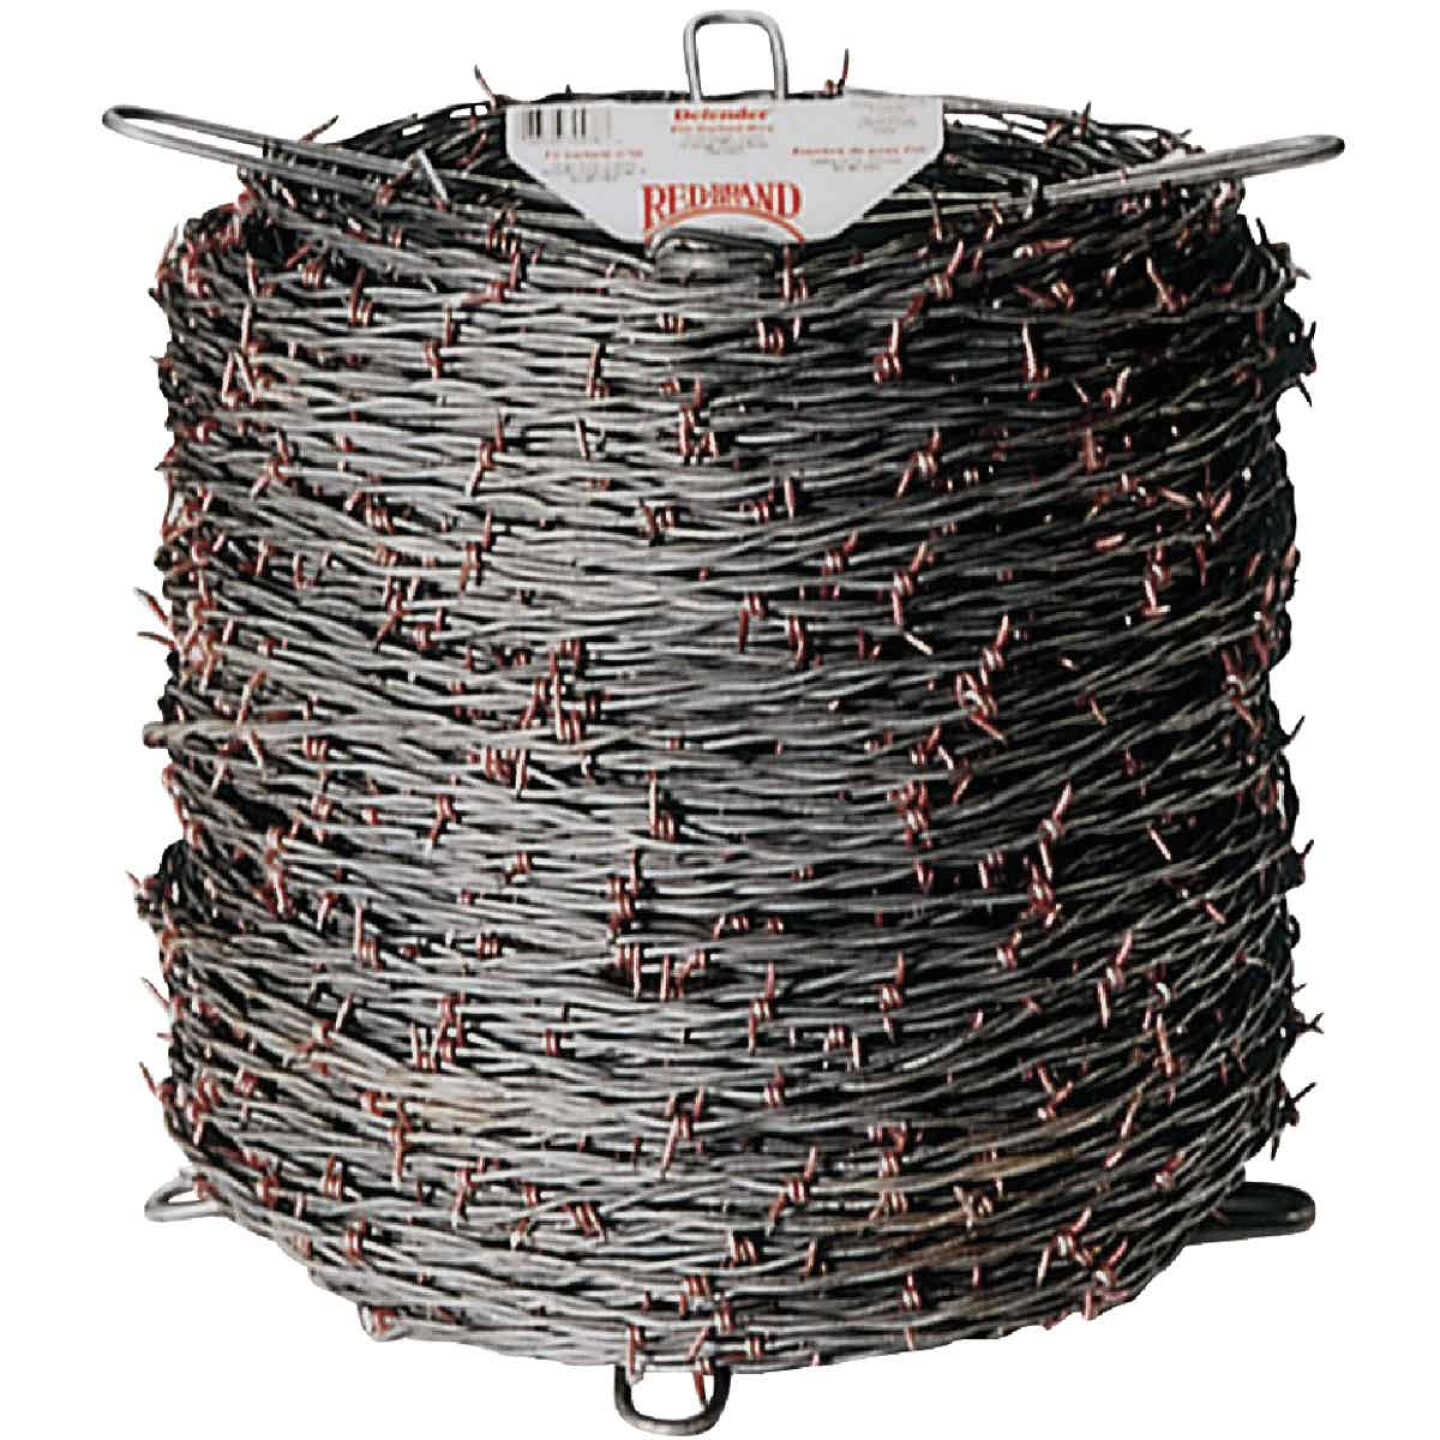 Keystone Red Brand 1320 Ft. x 12.5 Ga. 2 Pt. Barbed Wire Image 1